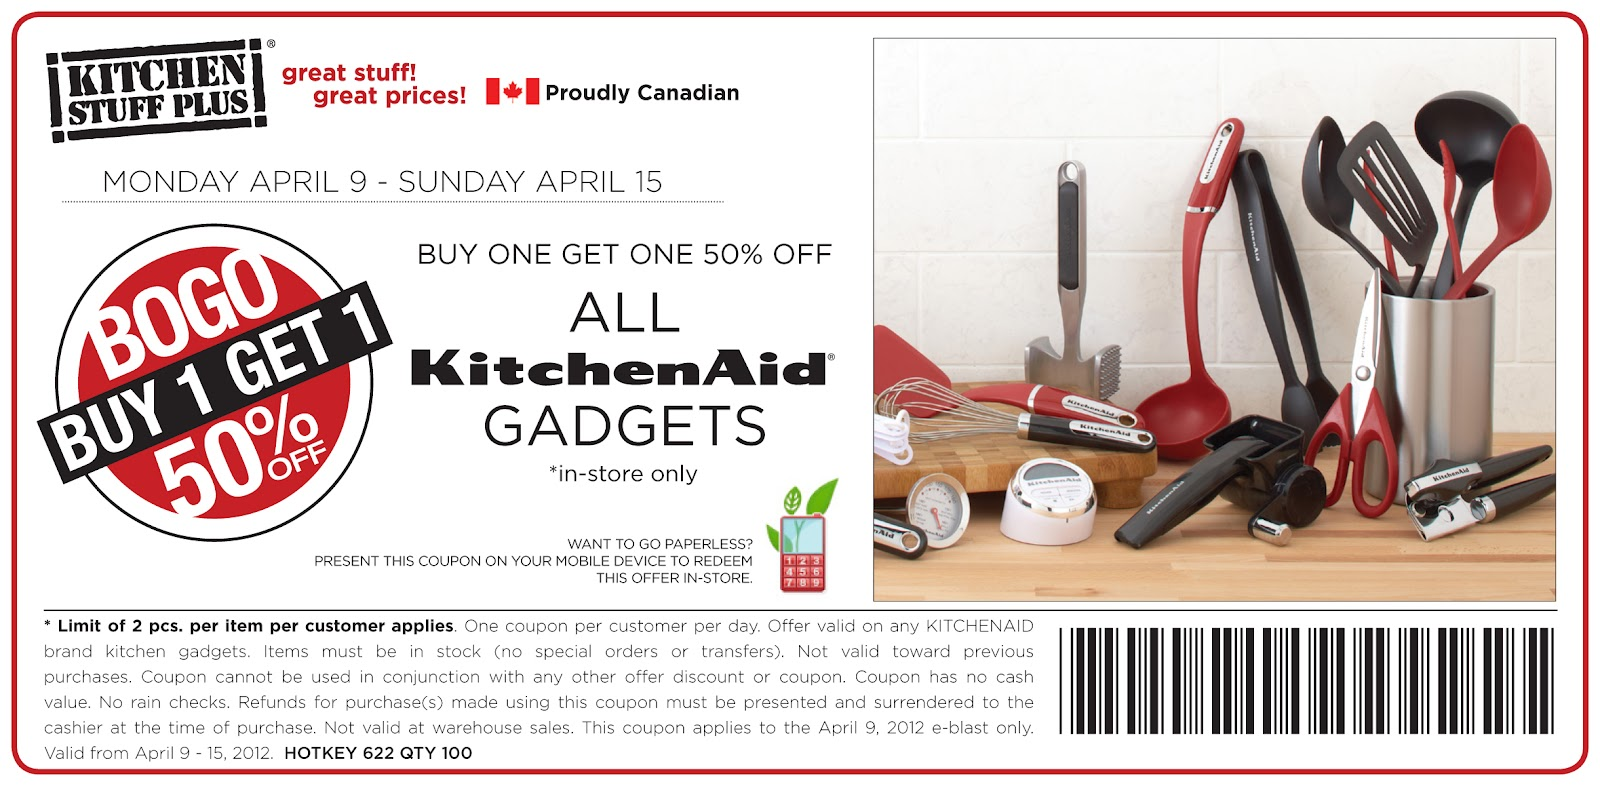 Kitchen Aid Coupons Best Stainless Steel Sinks Stuff Plus B1 Product Get 1 50 Off